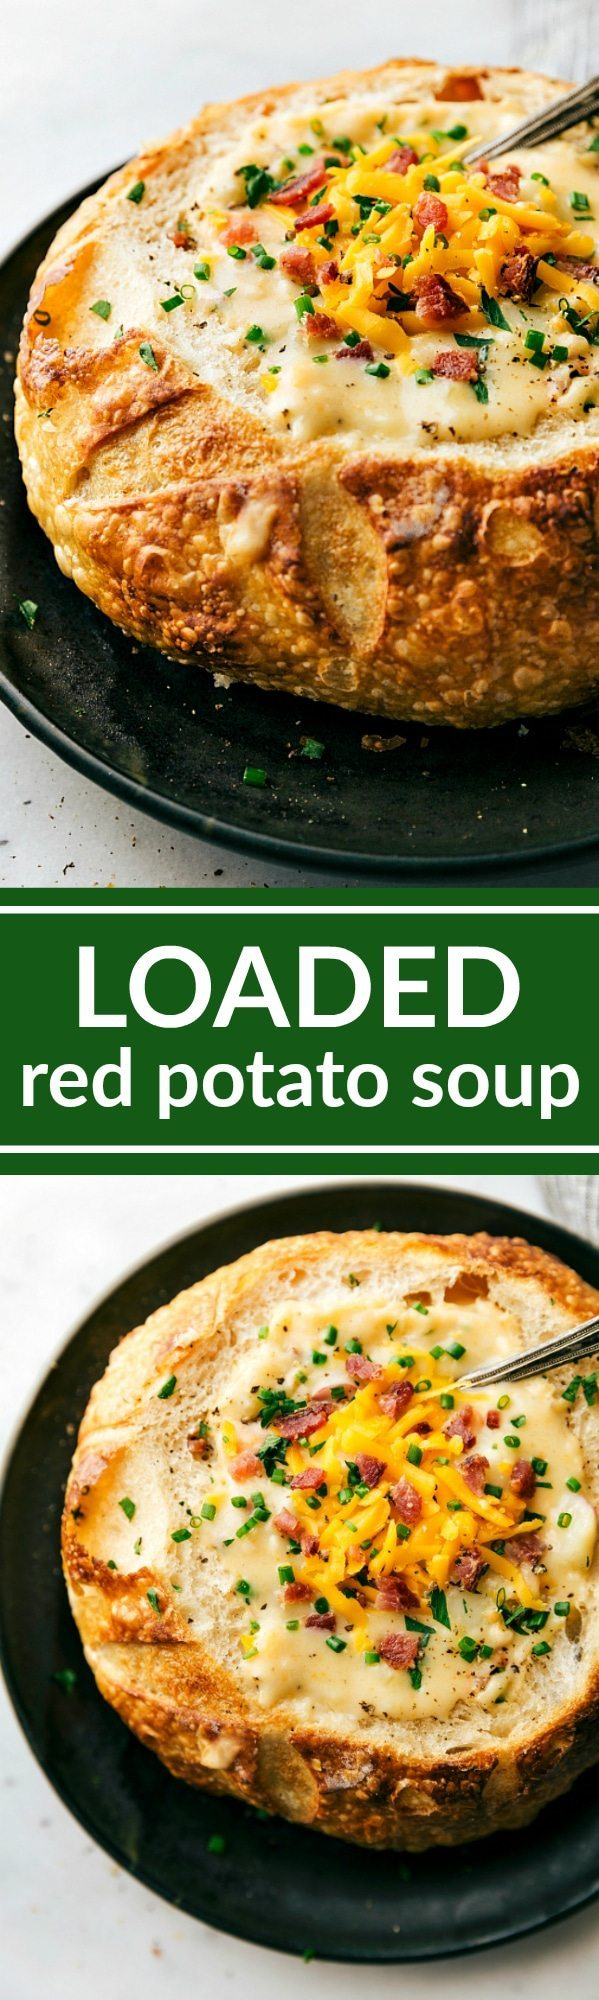 Loaded Red Potato Soup - Chelsea's Messy Apron